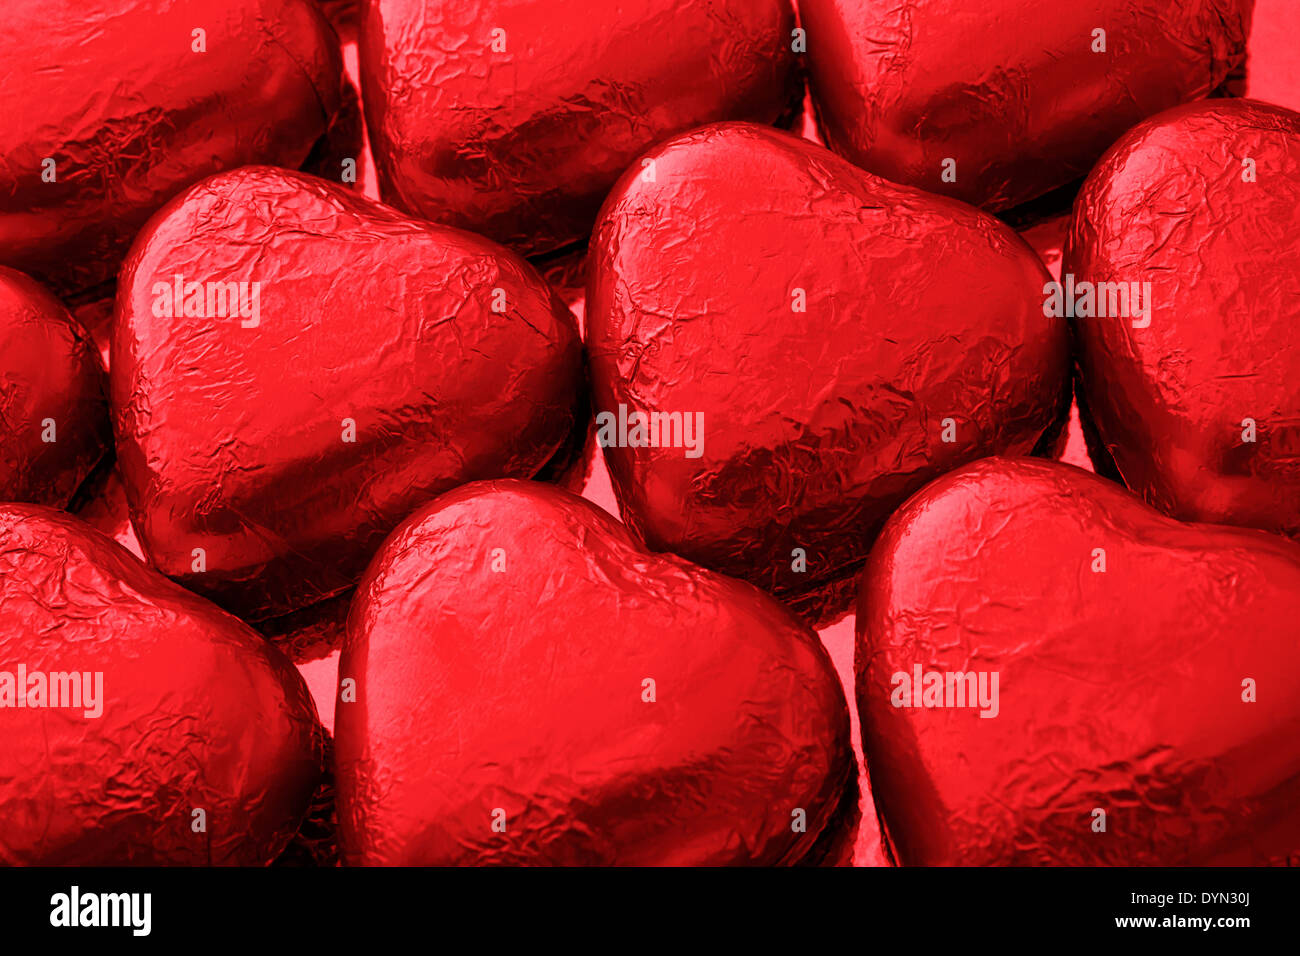 Red chocolate love hearts a great gift from a luxury chocolatier for saint valentines day - Stock Image